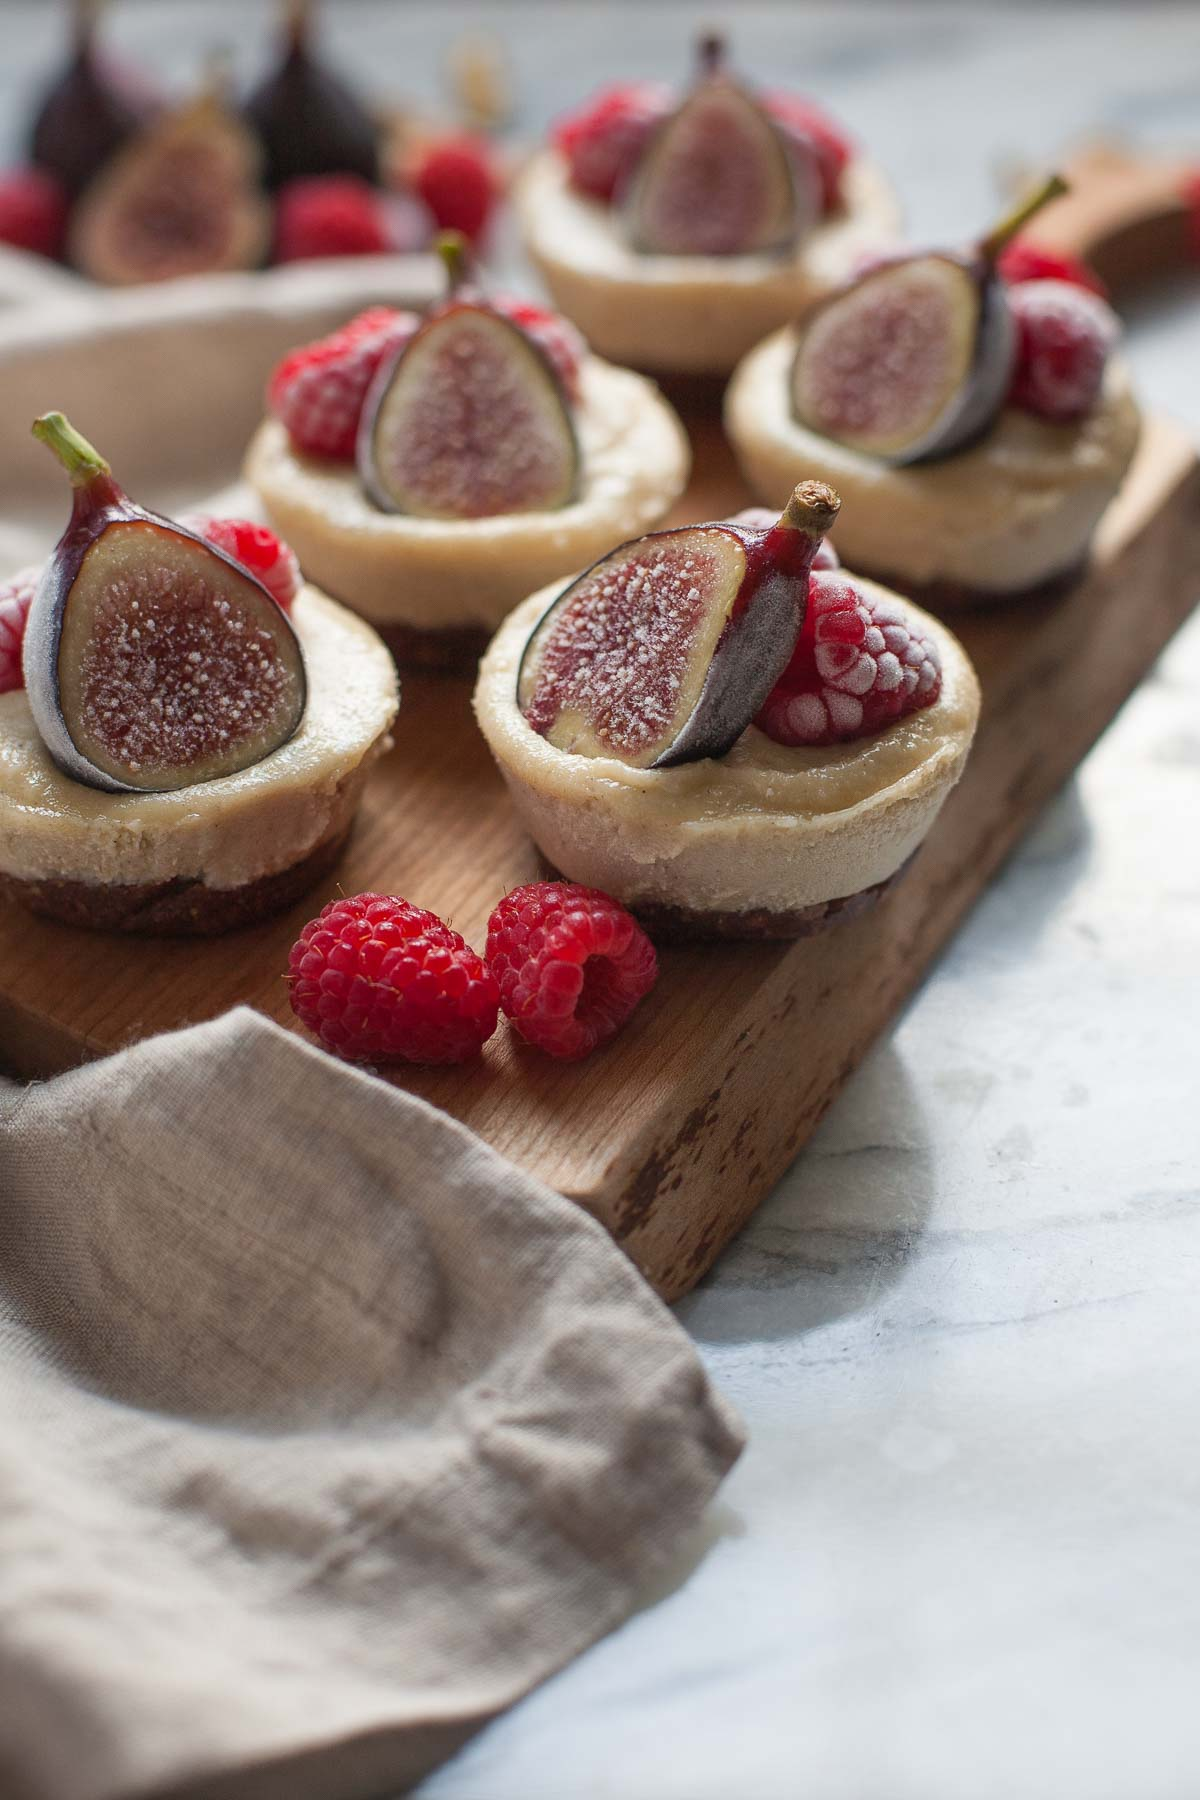 Vanilla Bean Cheesecakes with Figs and Raspberries